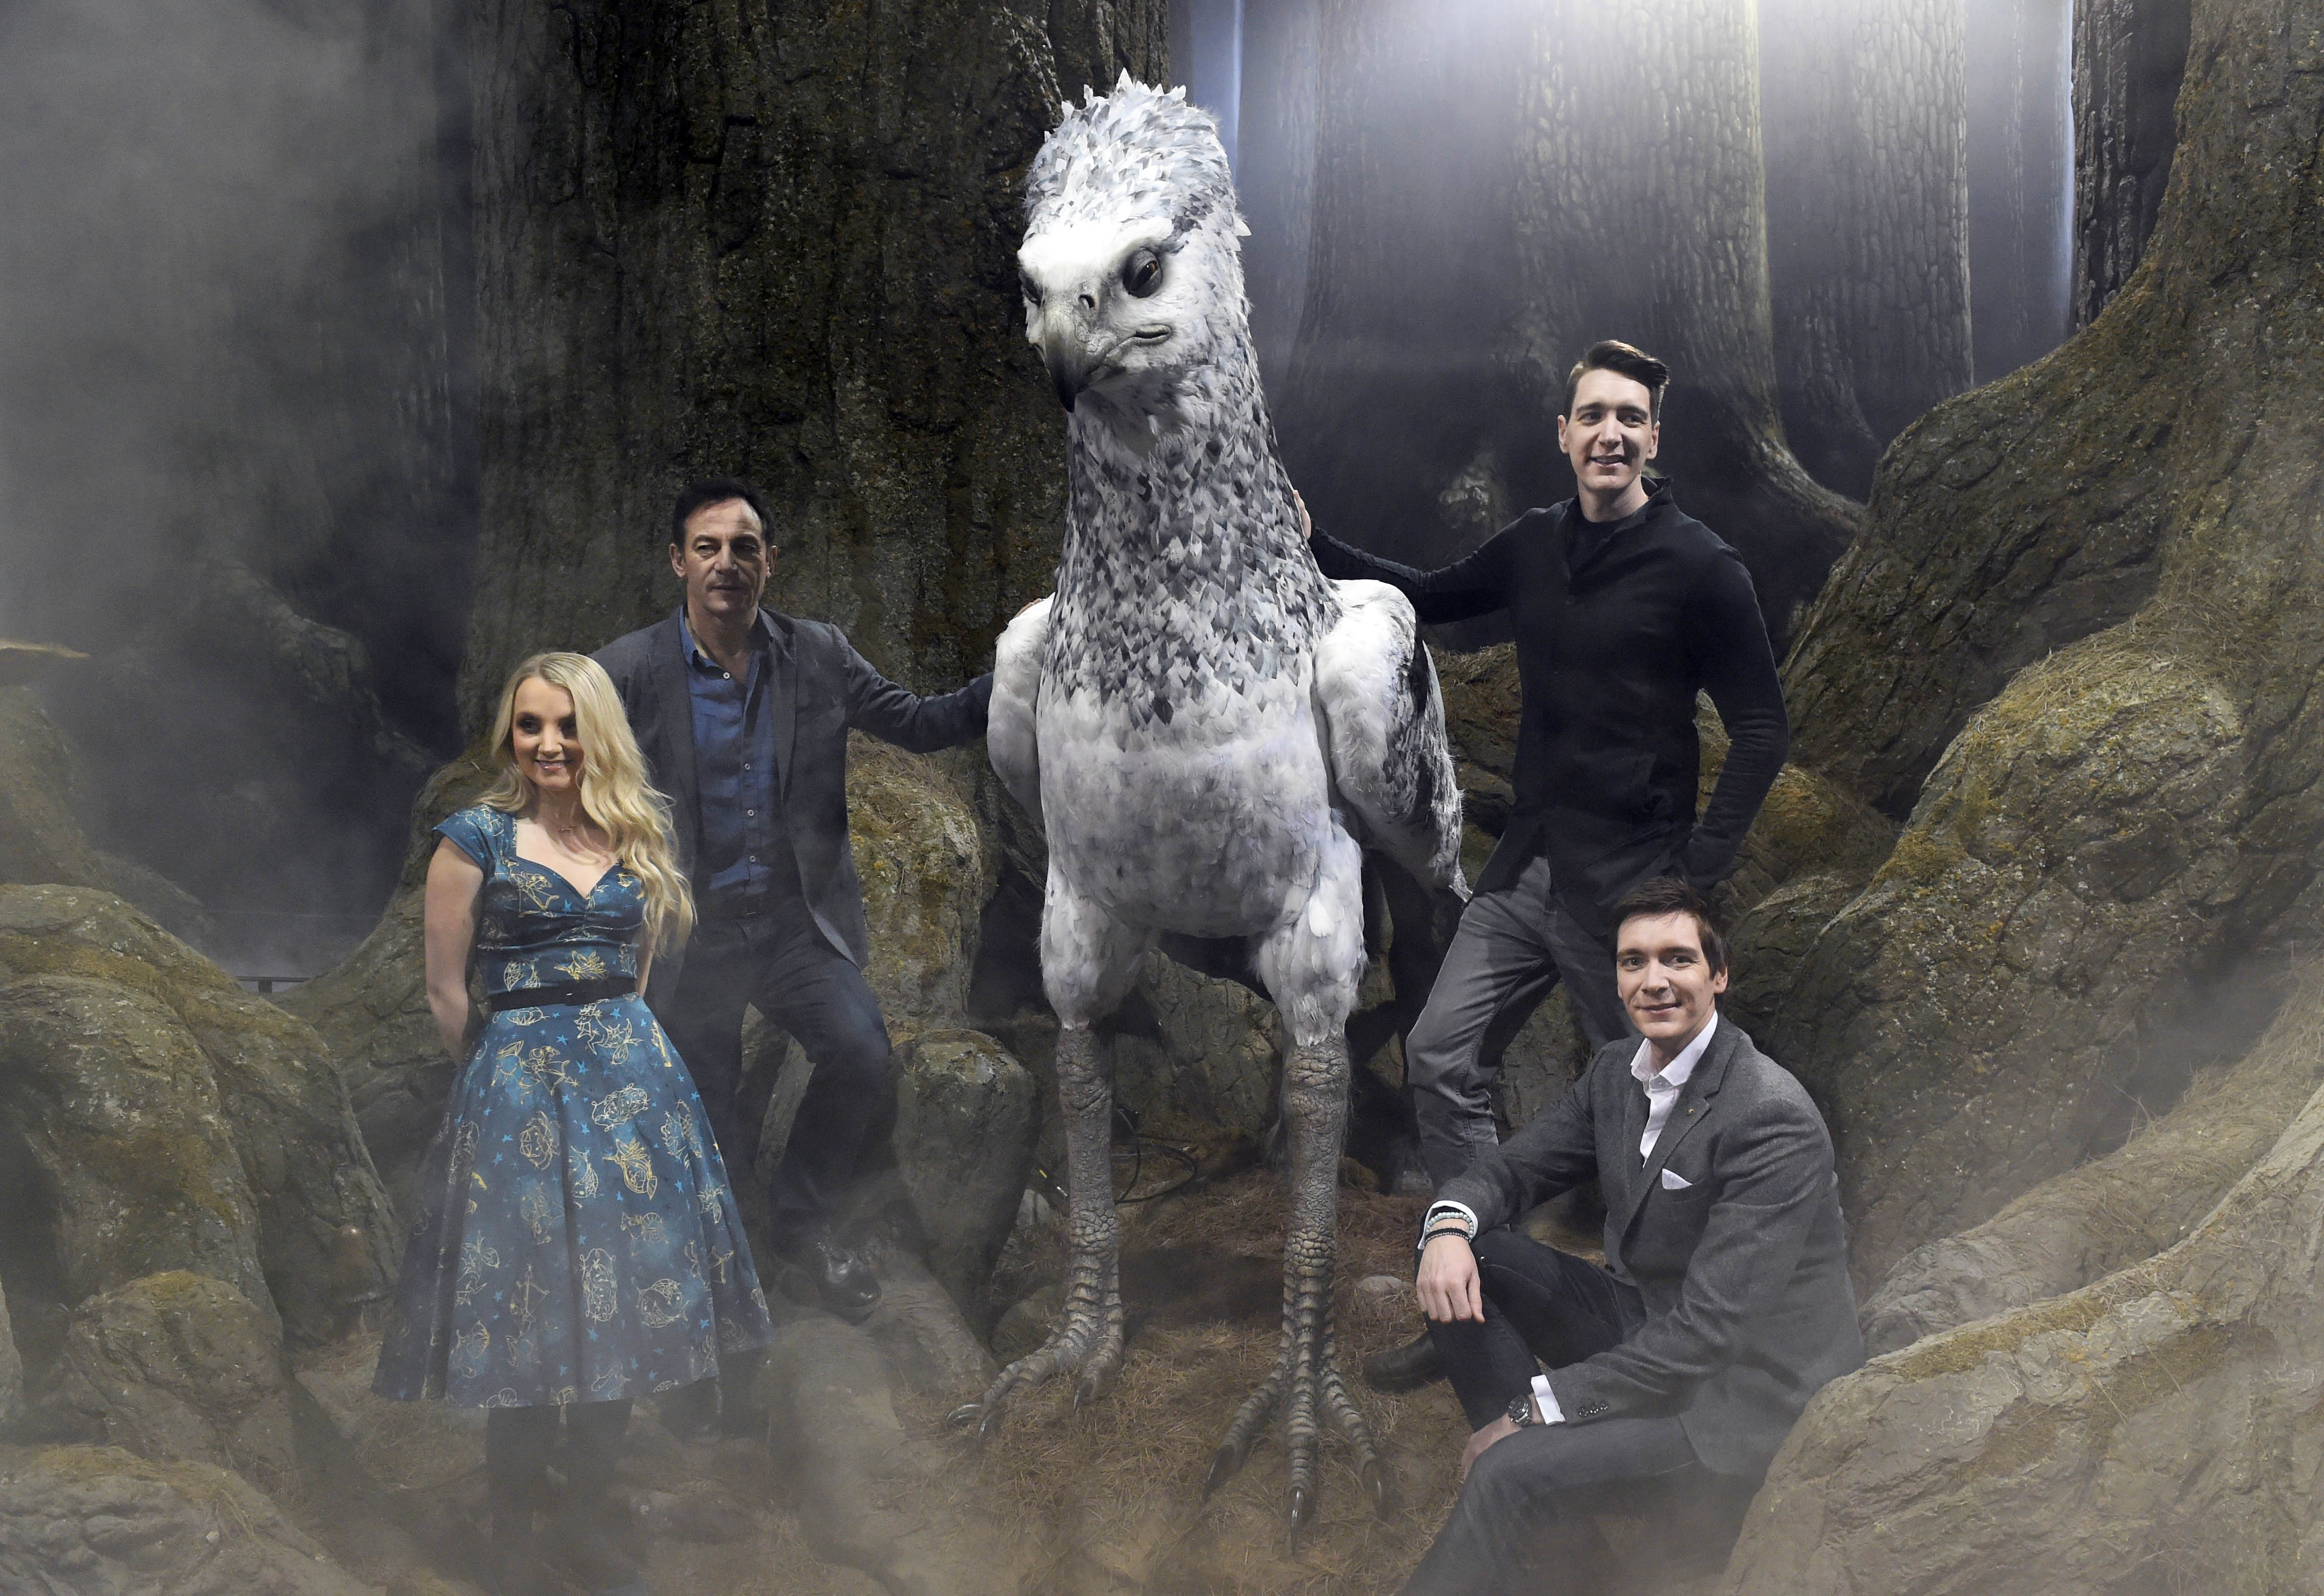 Evanna Lynch, Jason Isaccs, James Phelps and Oliver Phelps attend the First look at The Forbidden Forest, a new permanent expansion, opening 31st March, at Warner Bros. Studio Tour London - The Making of Harry Potter - on March 8, 2017 in Watford, England